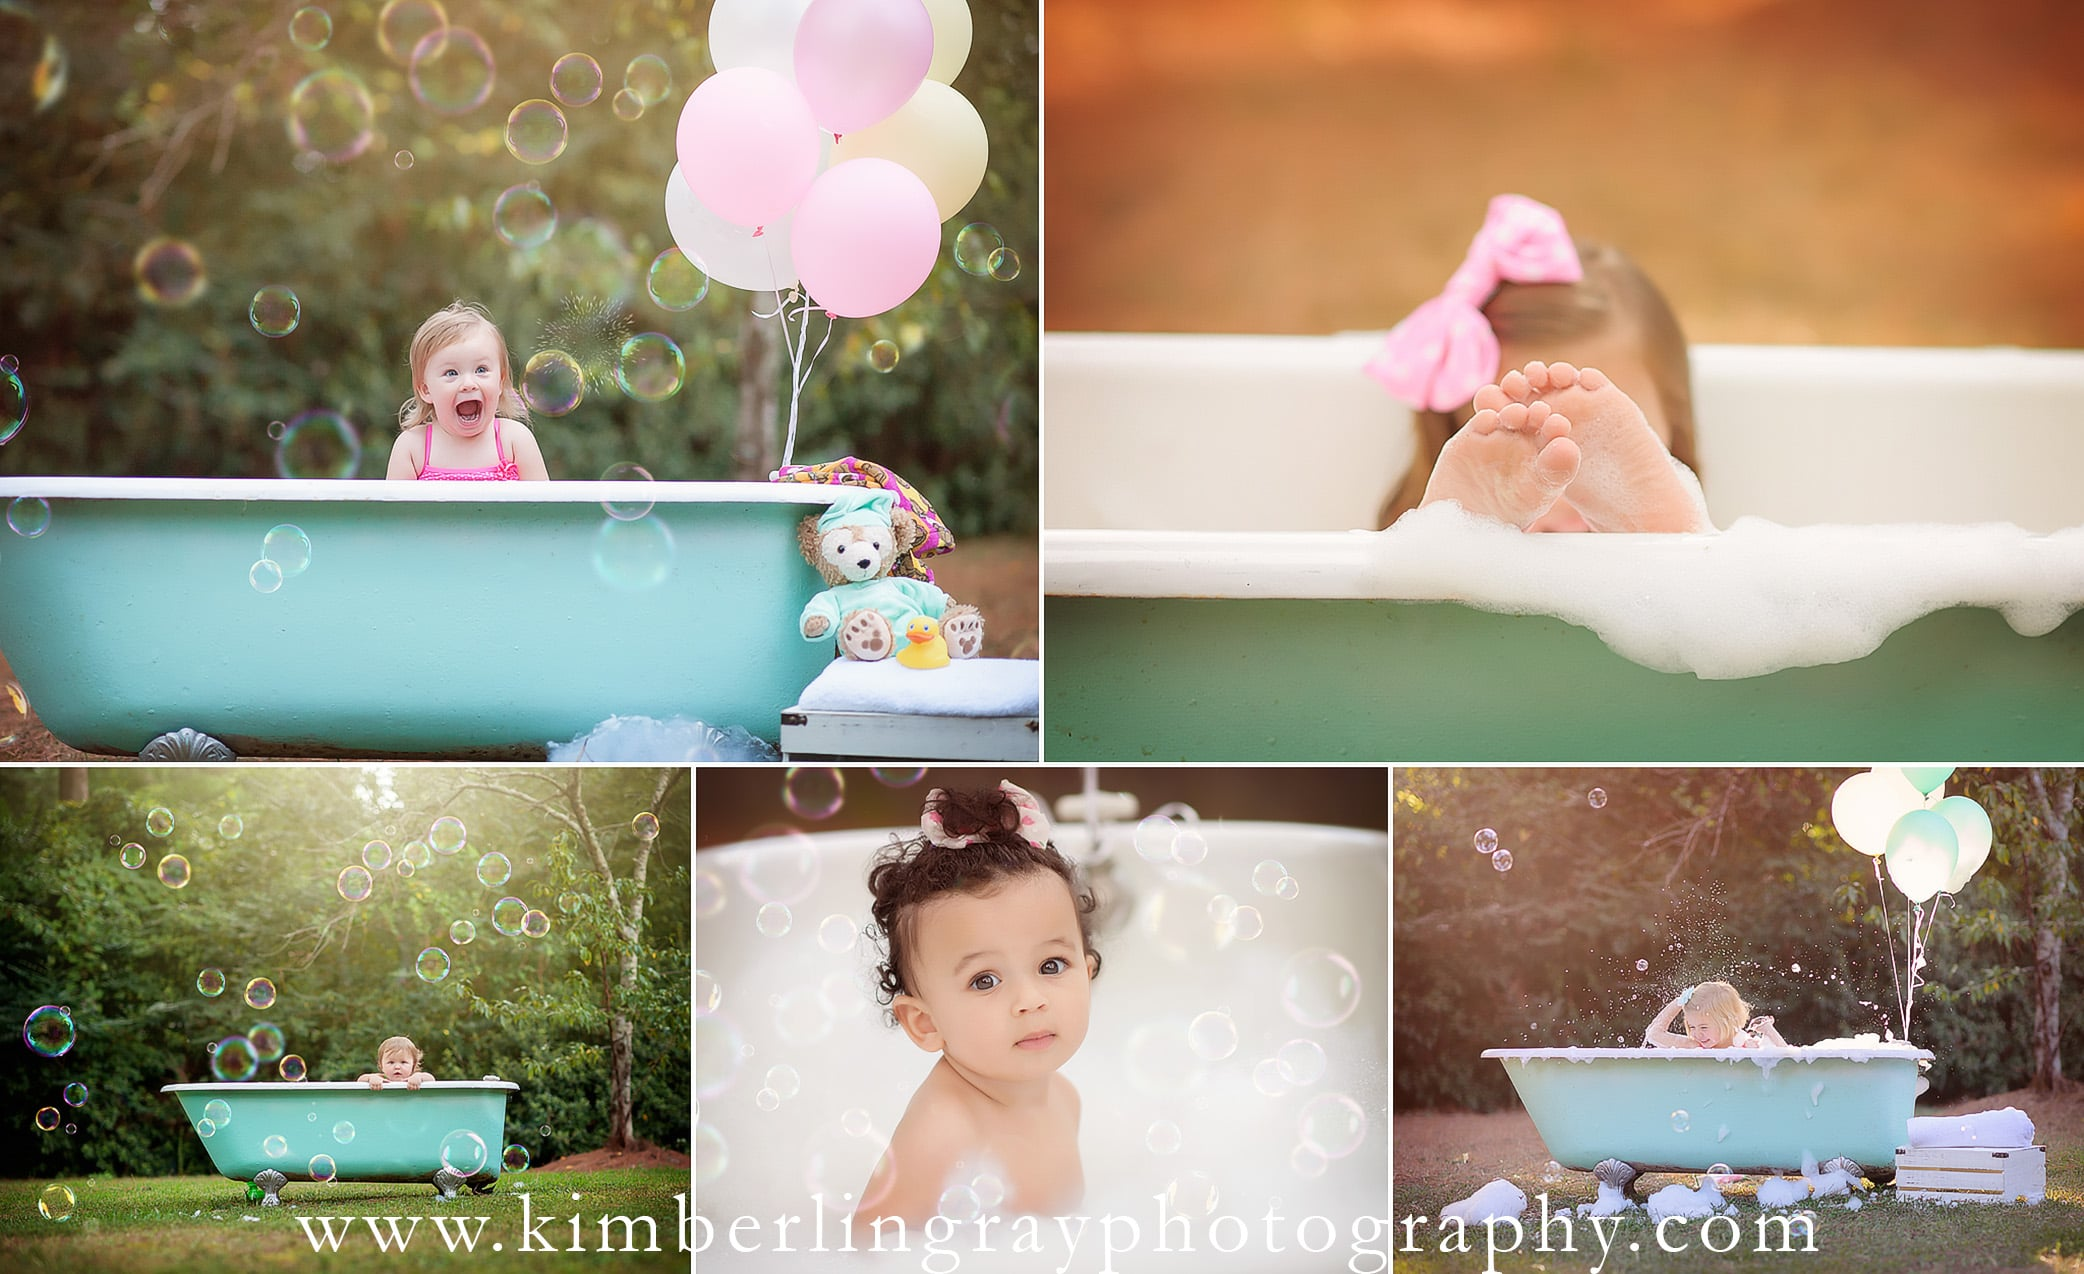 Bubble Bath | Bubble Minisession | Virginia Beach Kid Photo